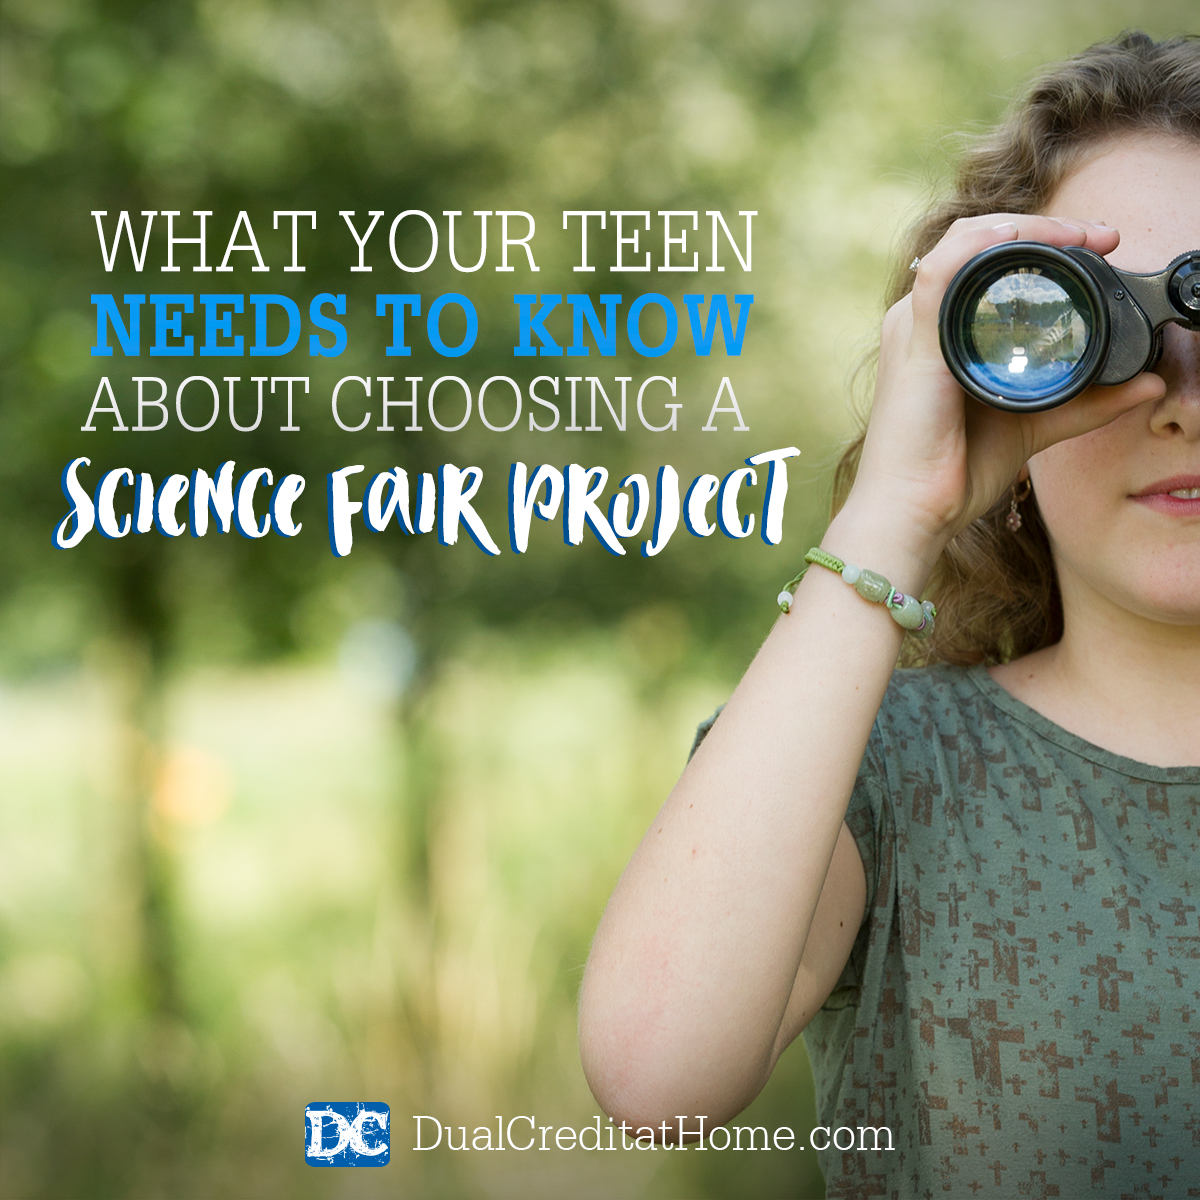 What Your Teen Needs to Know About Choosing a Science Fair Topic